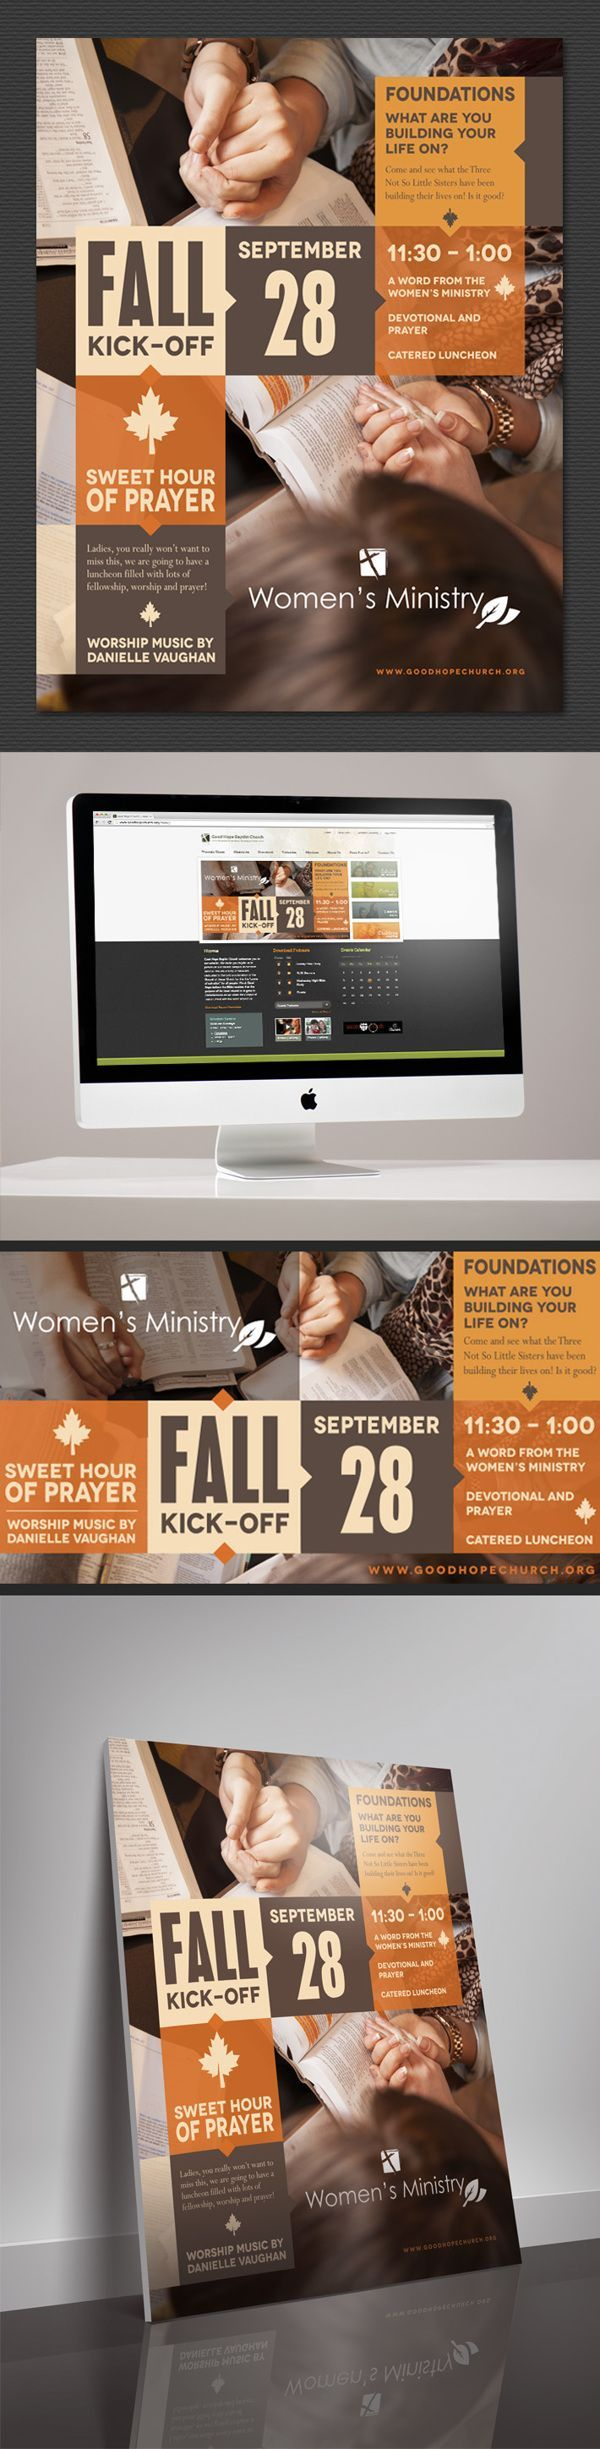 designer handbags copies Random Quality Graphic Design Inspiration | Graphics, Flyers and Women's Ministry